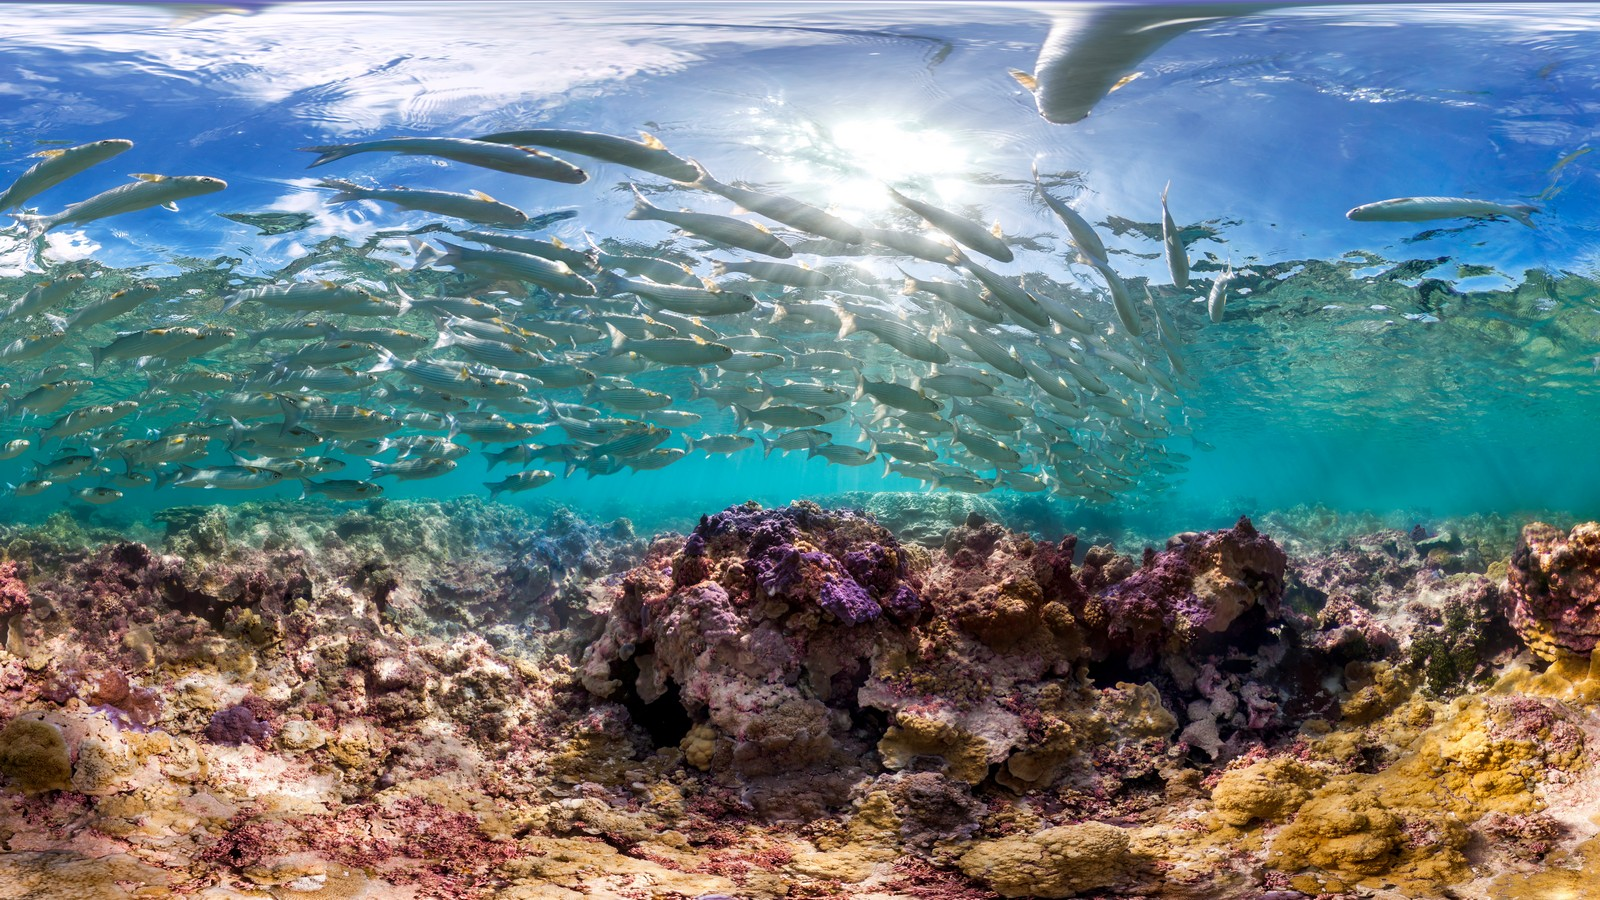 Large school of fish above coral reef.